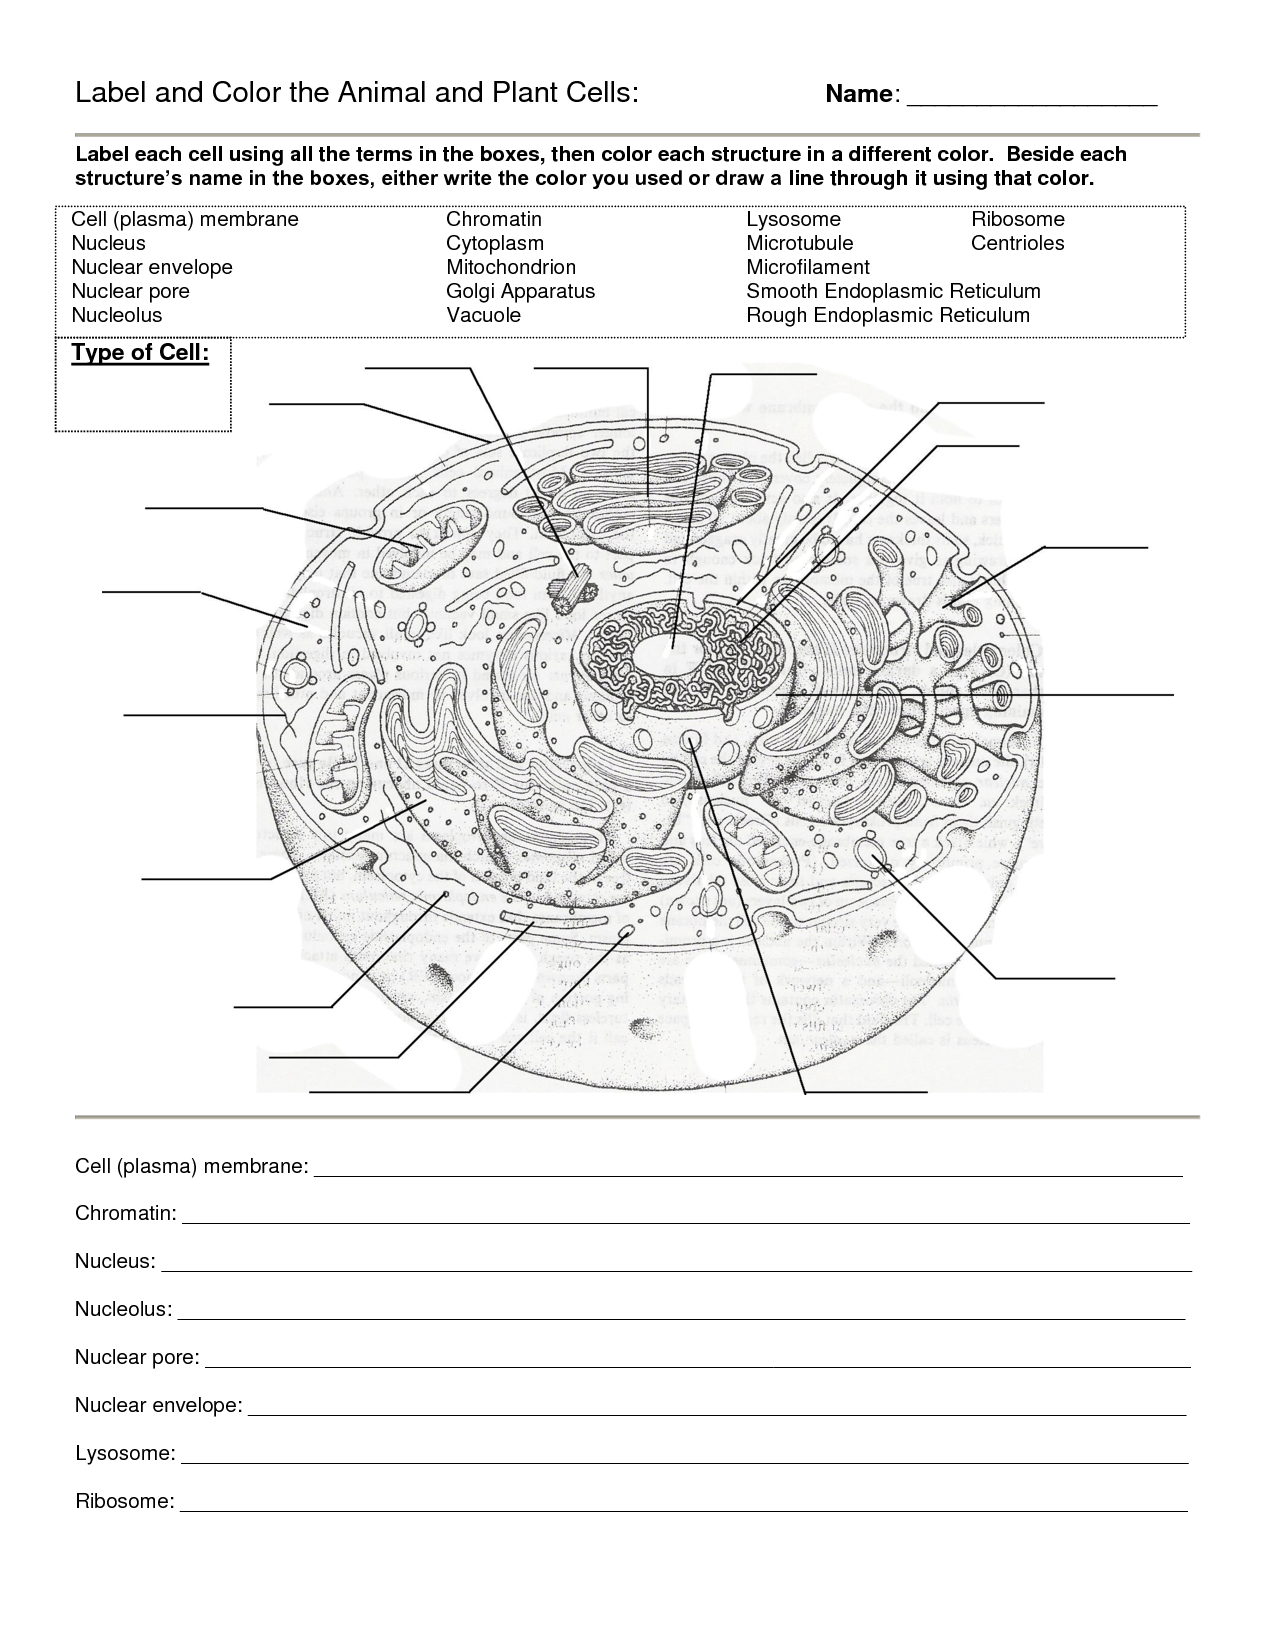 Worksheet : Animal Cell Coloring Worksheet Answers Animal Cell - Free Printable Cell Worksheets